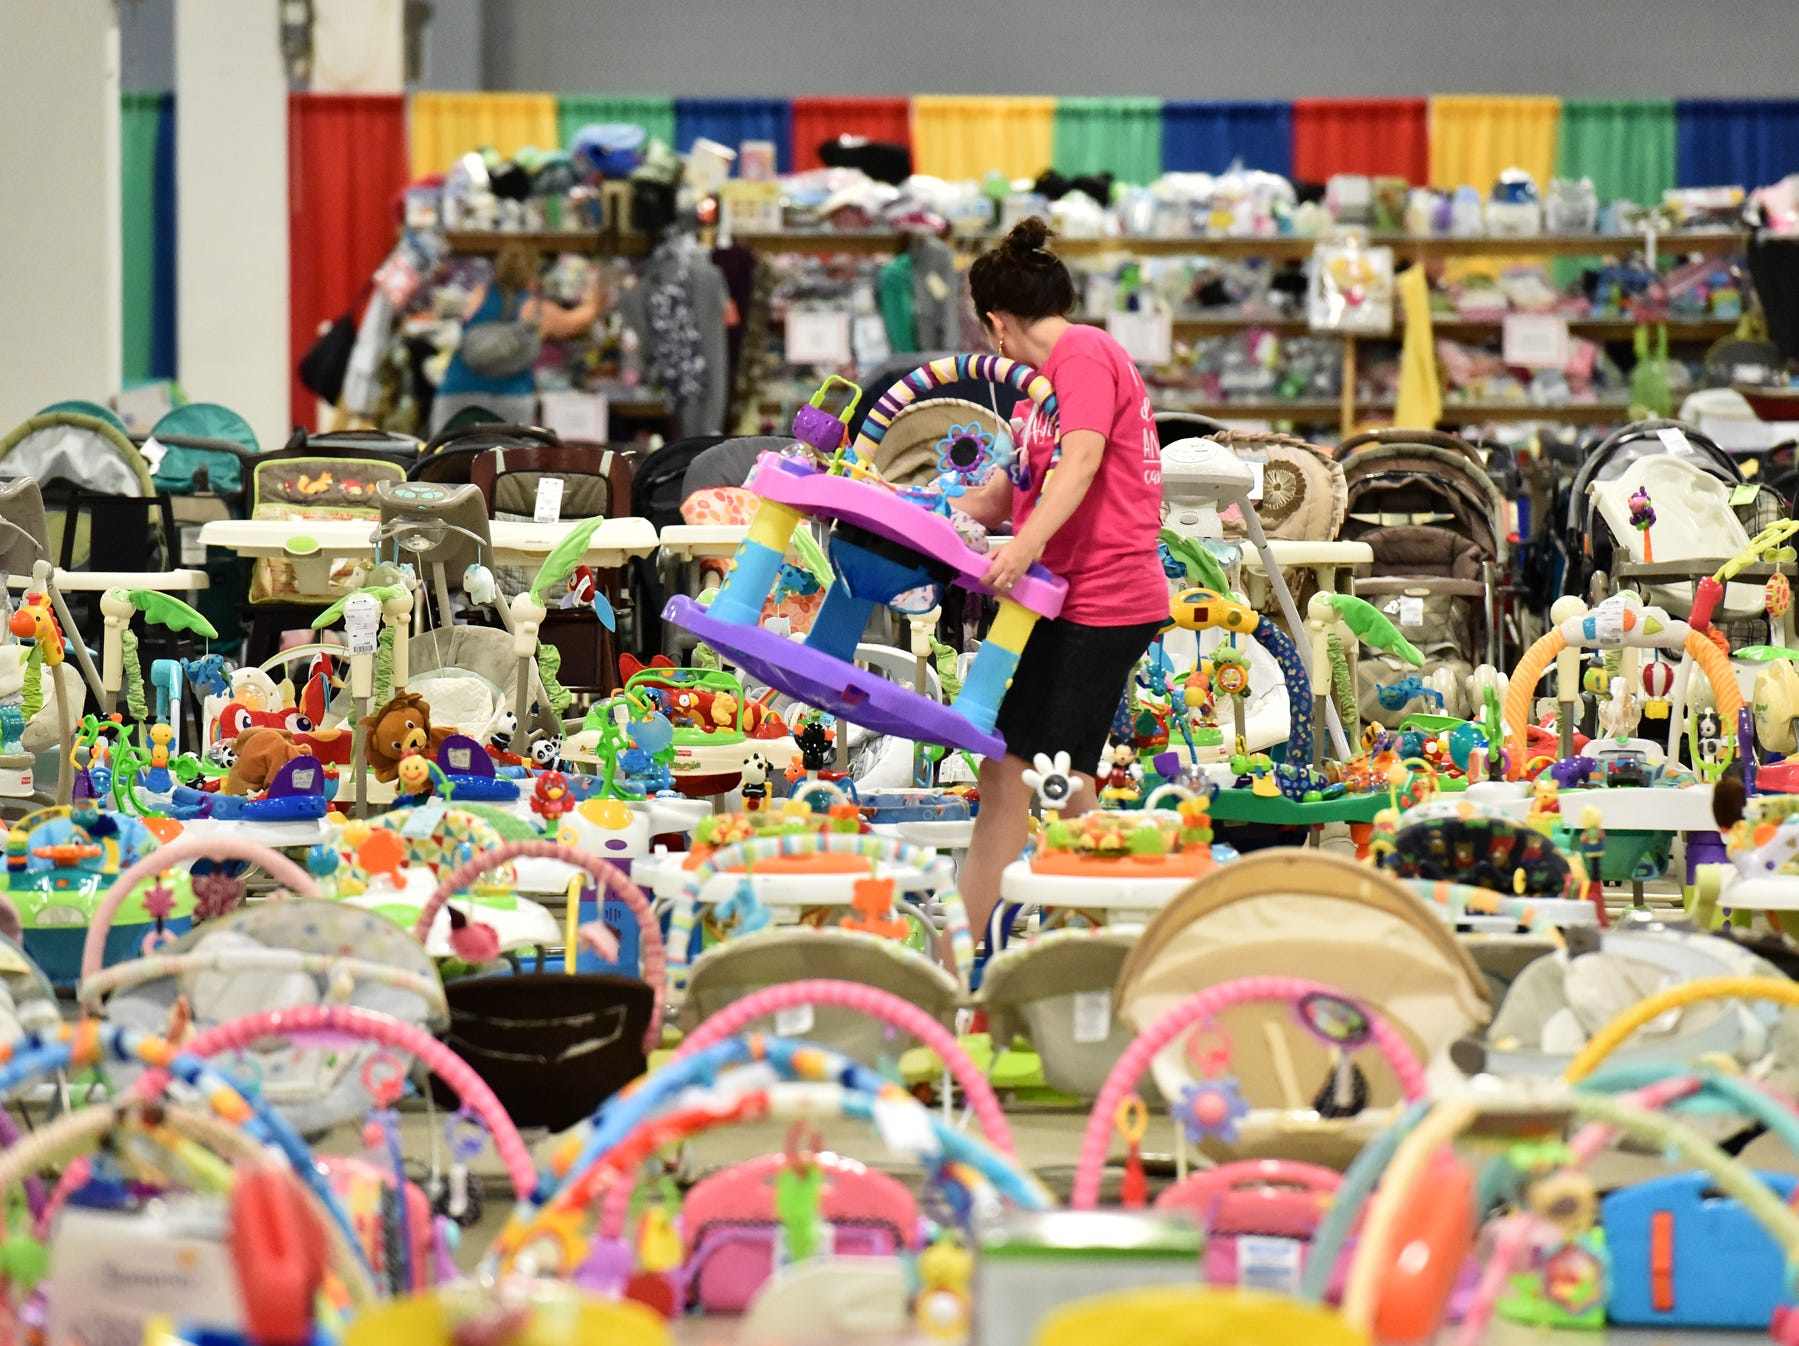 People buy and sell clothes and other items during the Switch-A-Roos children's consignment event at the TD Convention Center in Greenville on Wednesday afternoon, August 8, 2018. The event will be held through the weekend ending at 5pm Sunday evening.